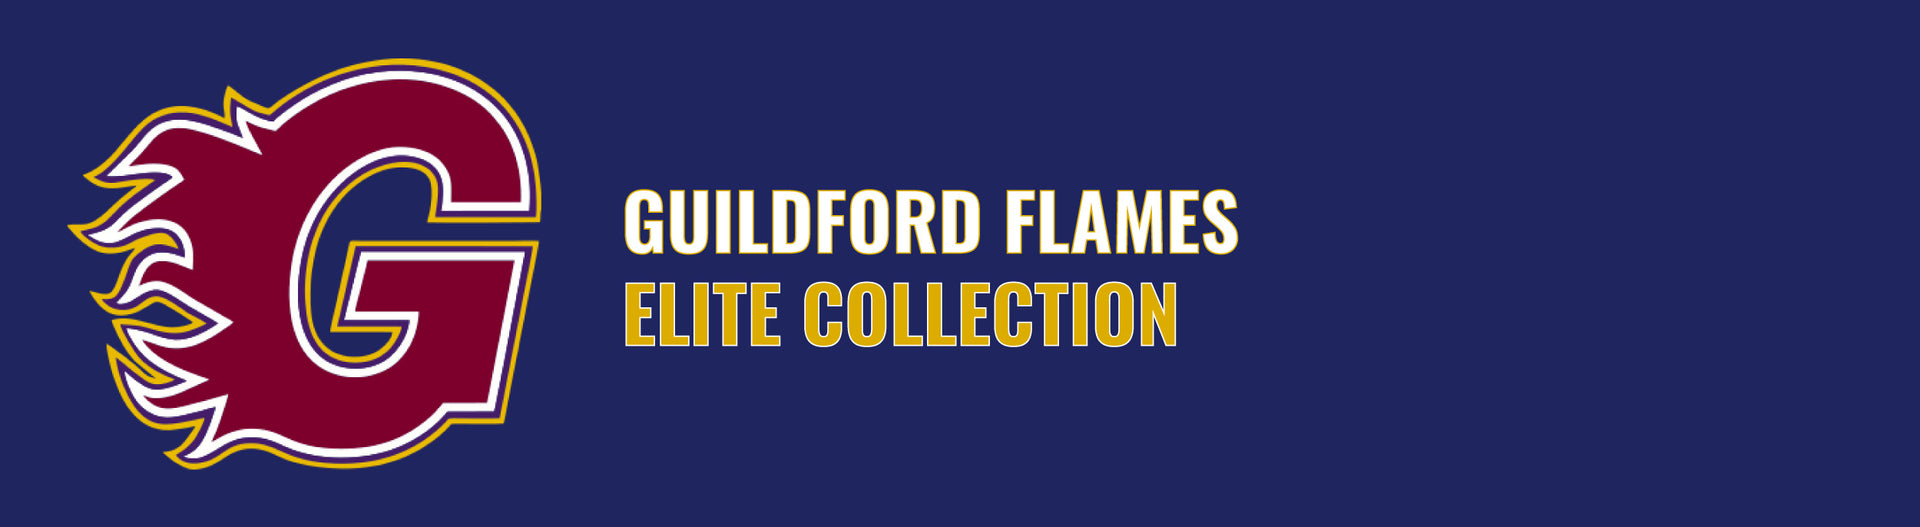 Guildford Flames Elite Collection